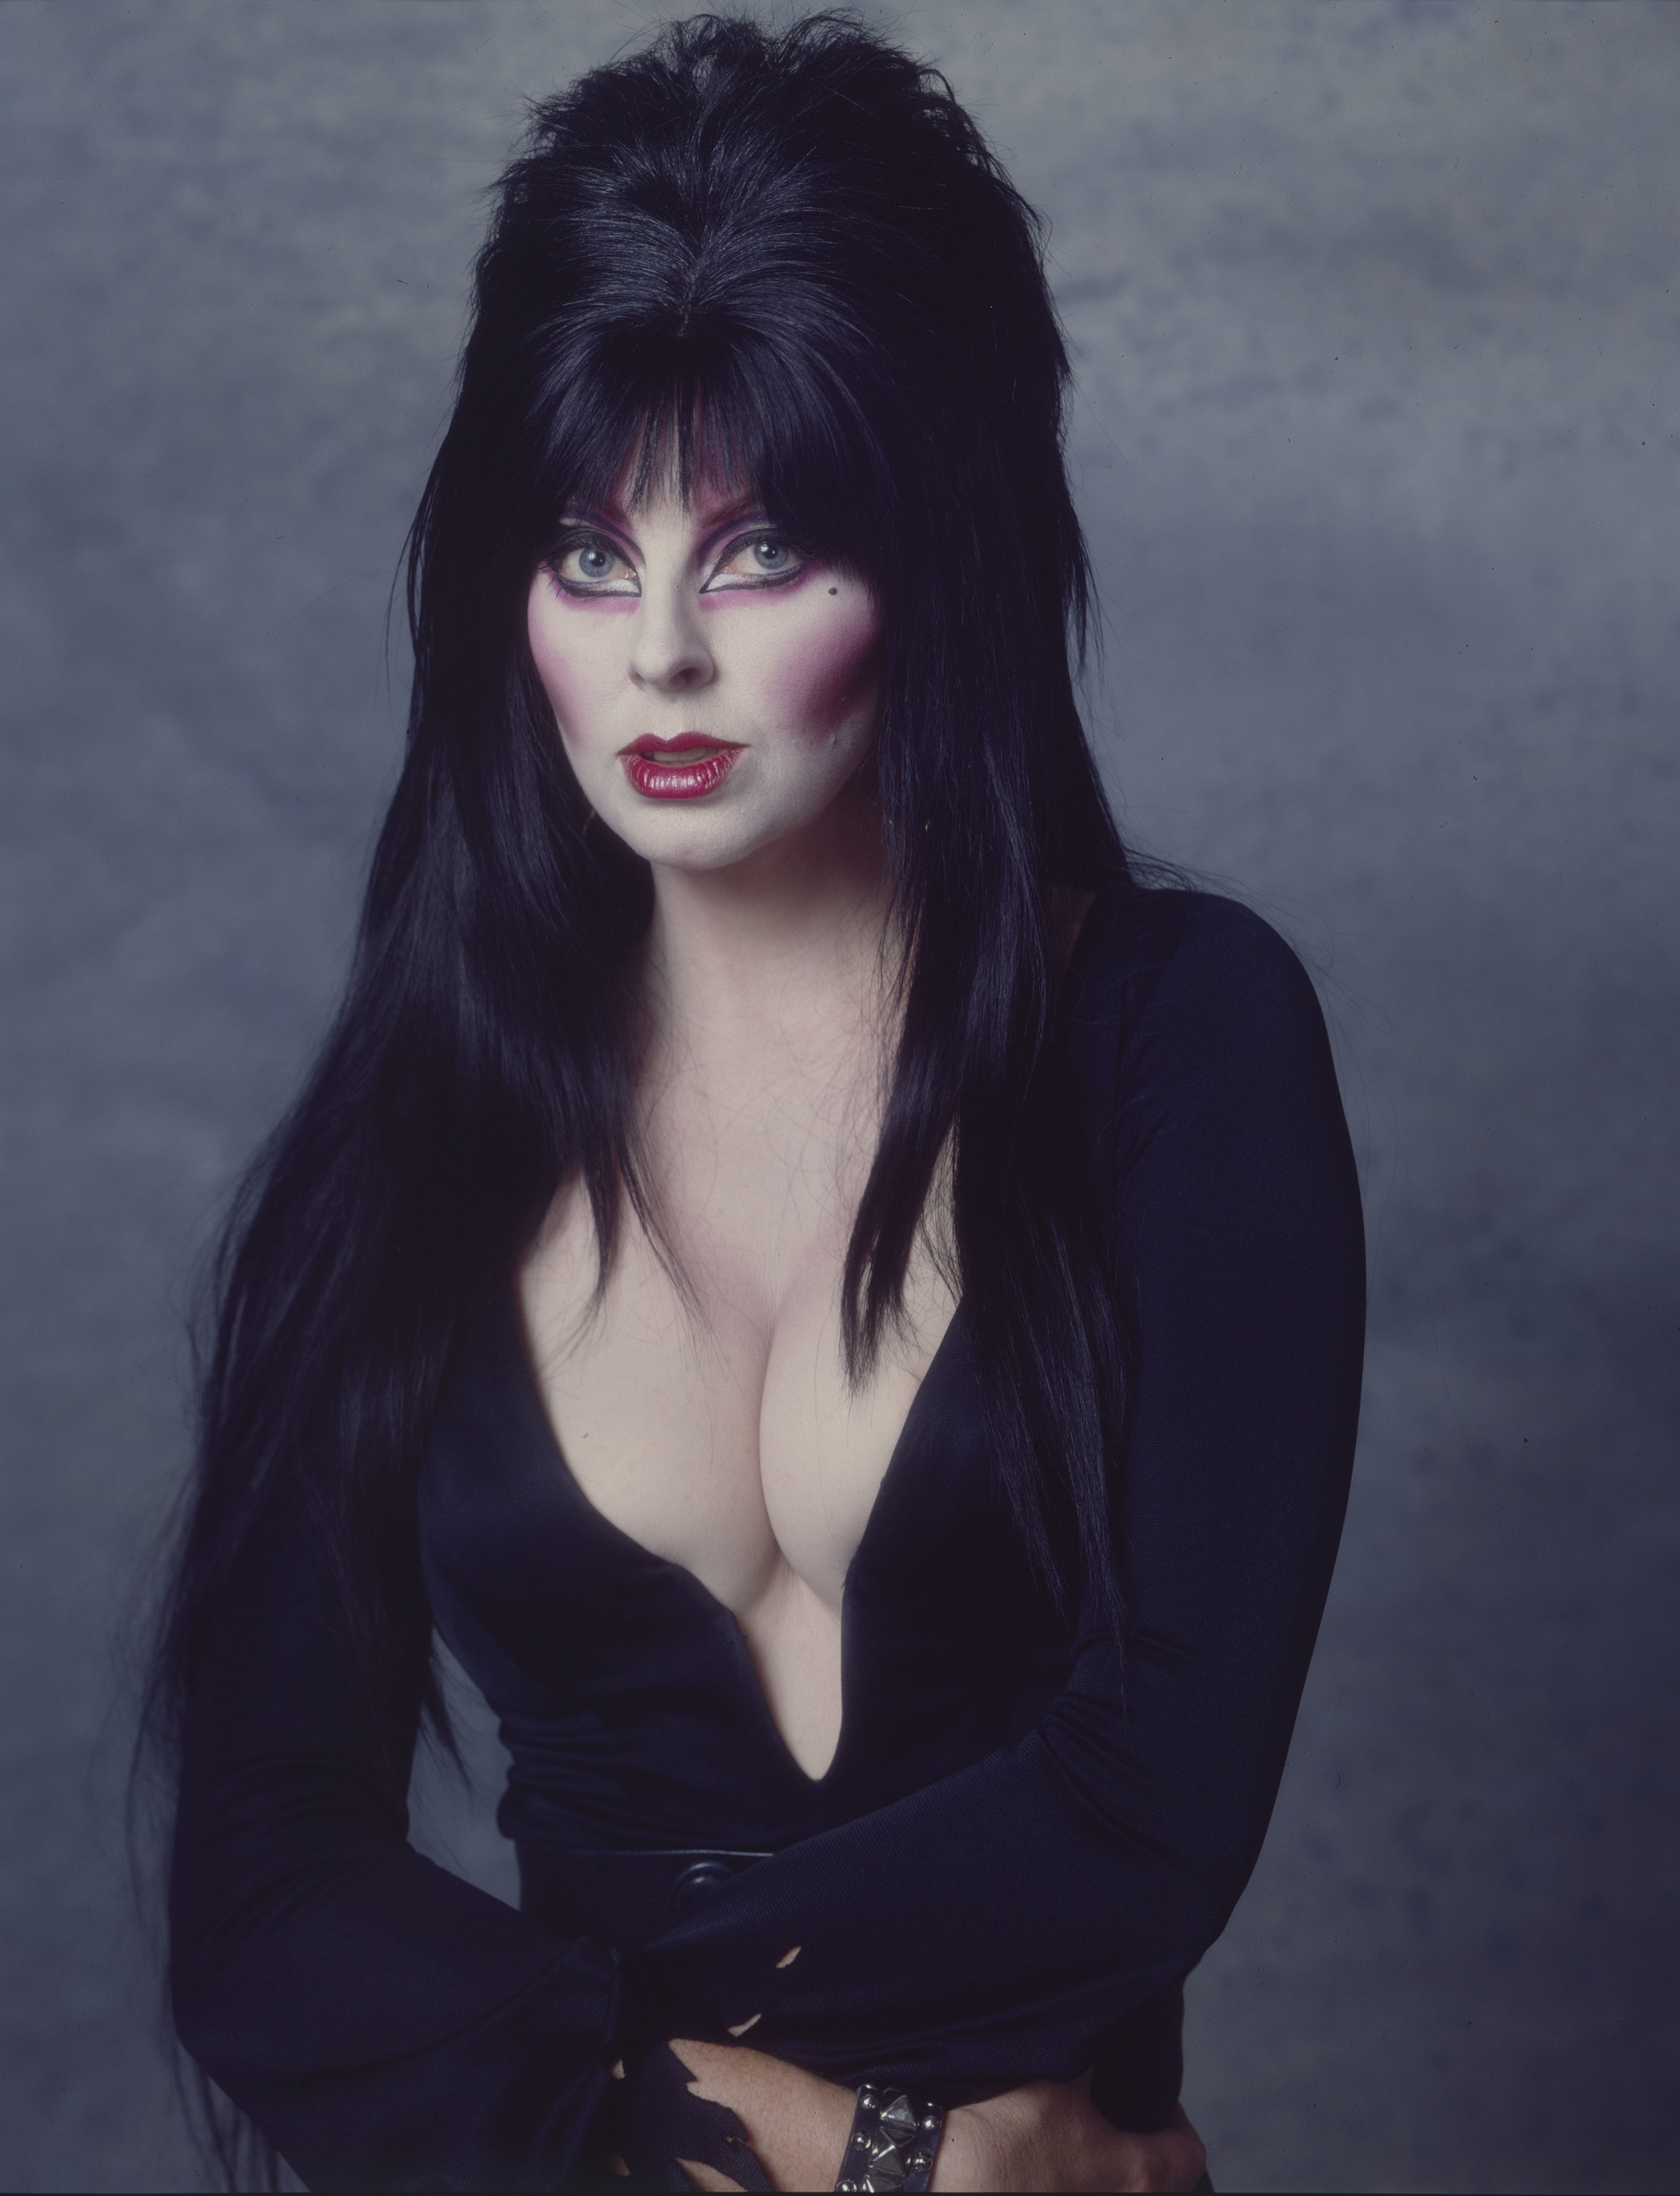 in her dark makeup and campy elvira outfit